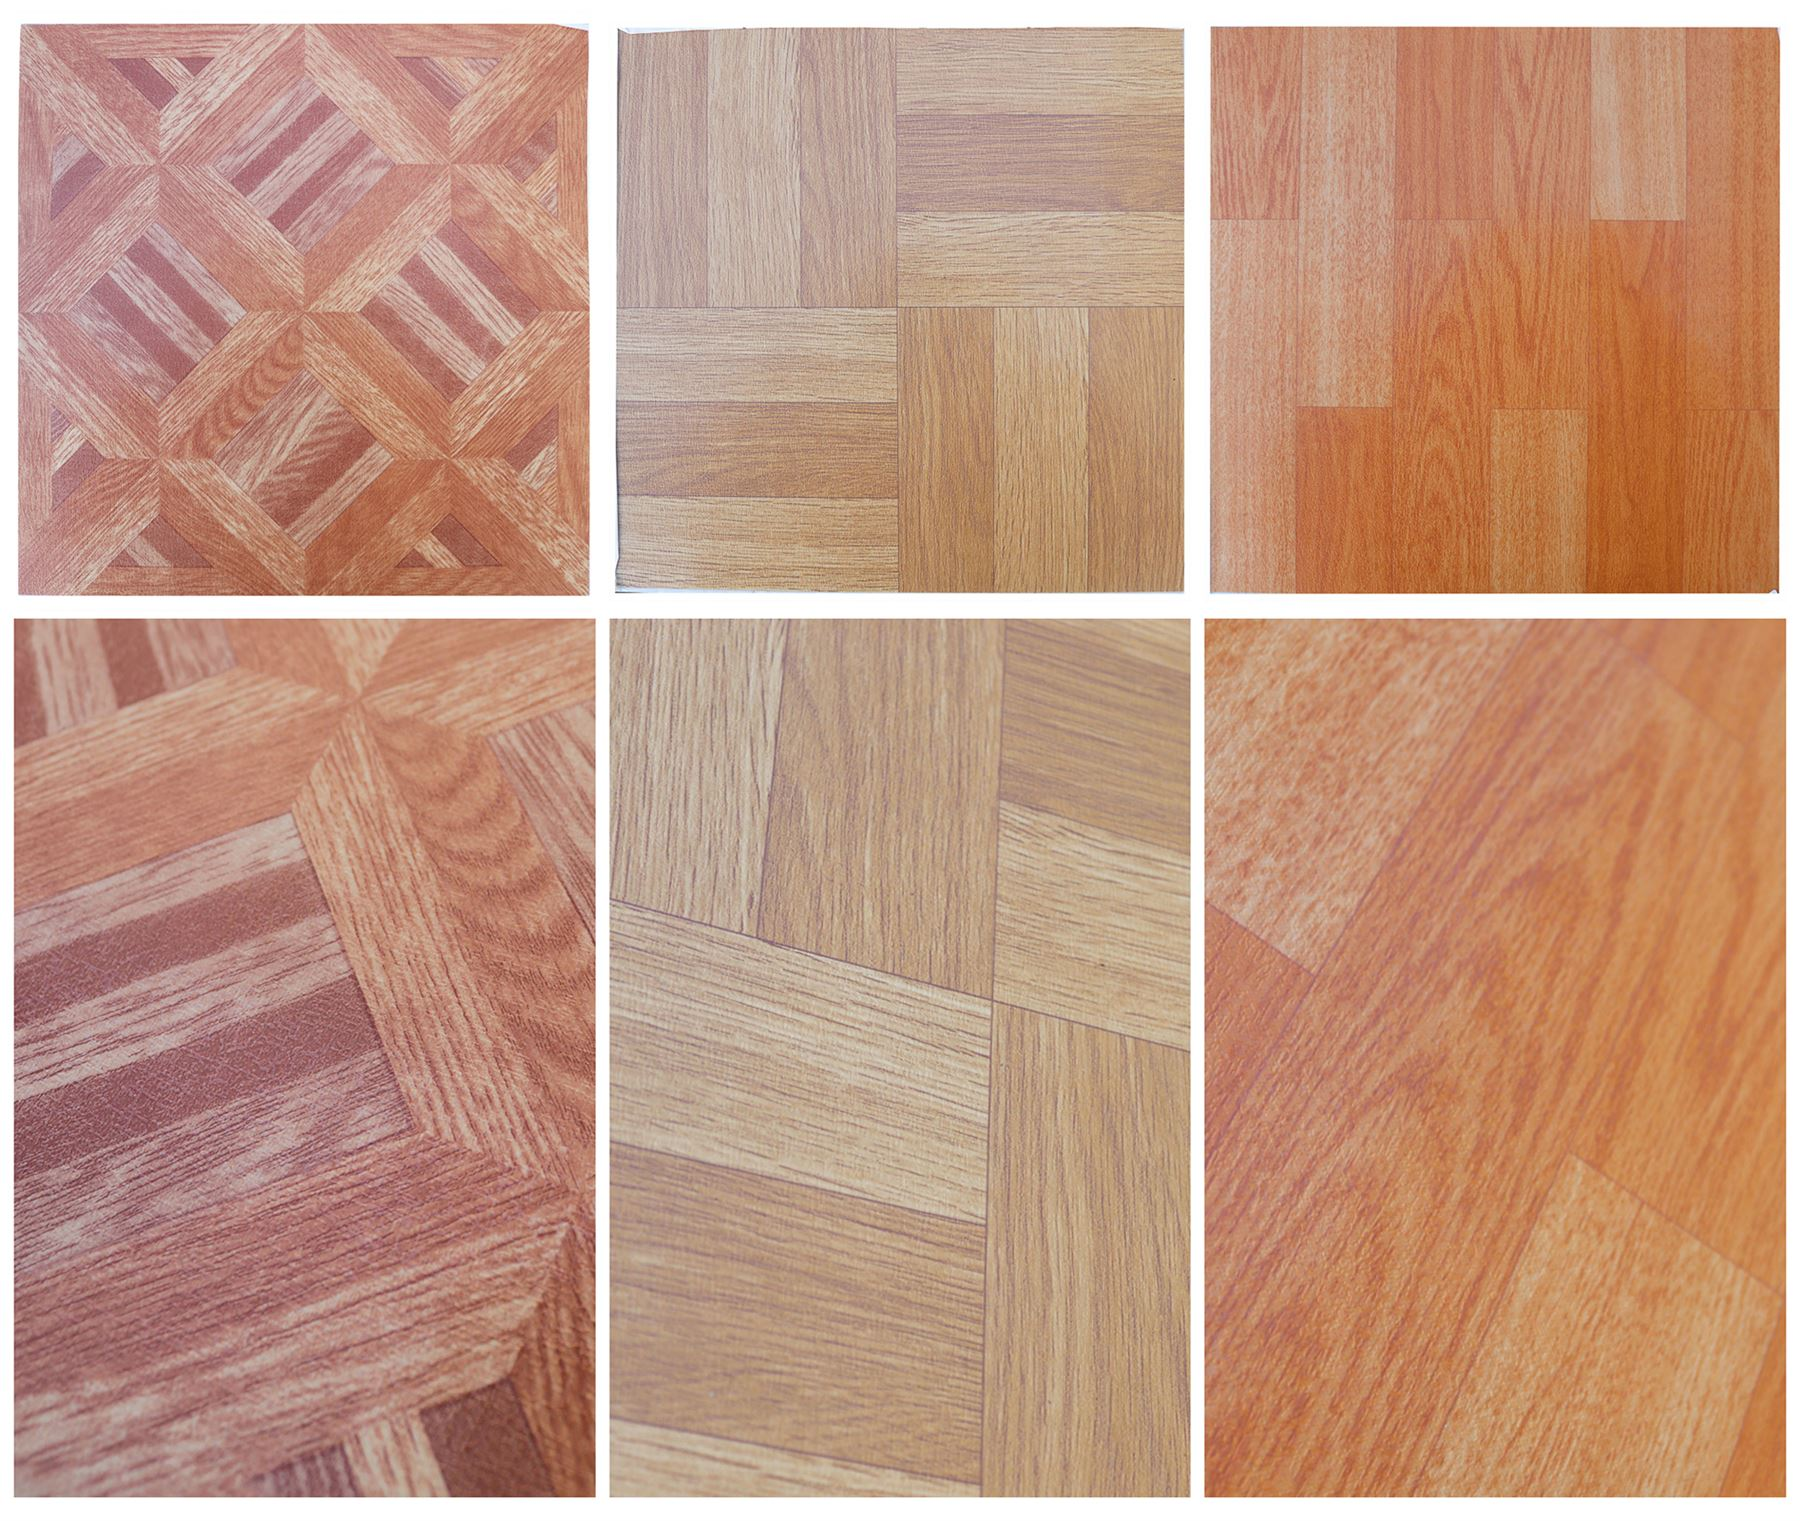 Vinyl Floor Tiles Wood Effect Parquet Panels Squares Self Adhesive